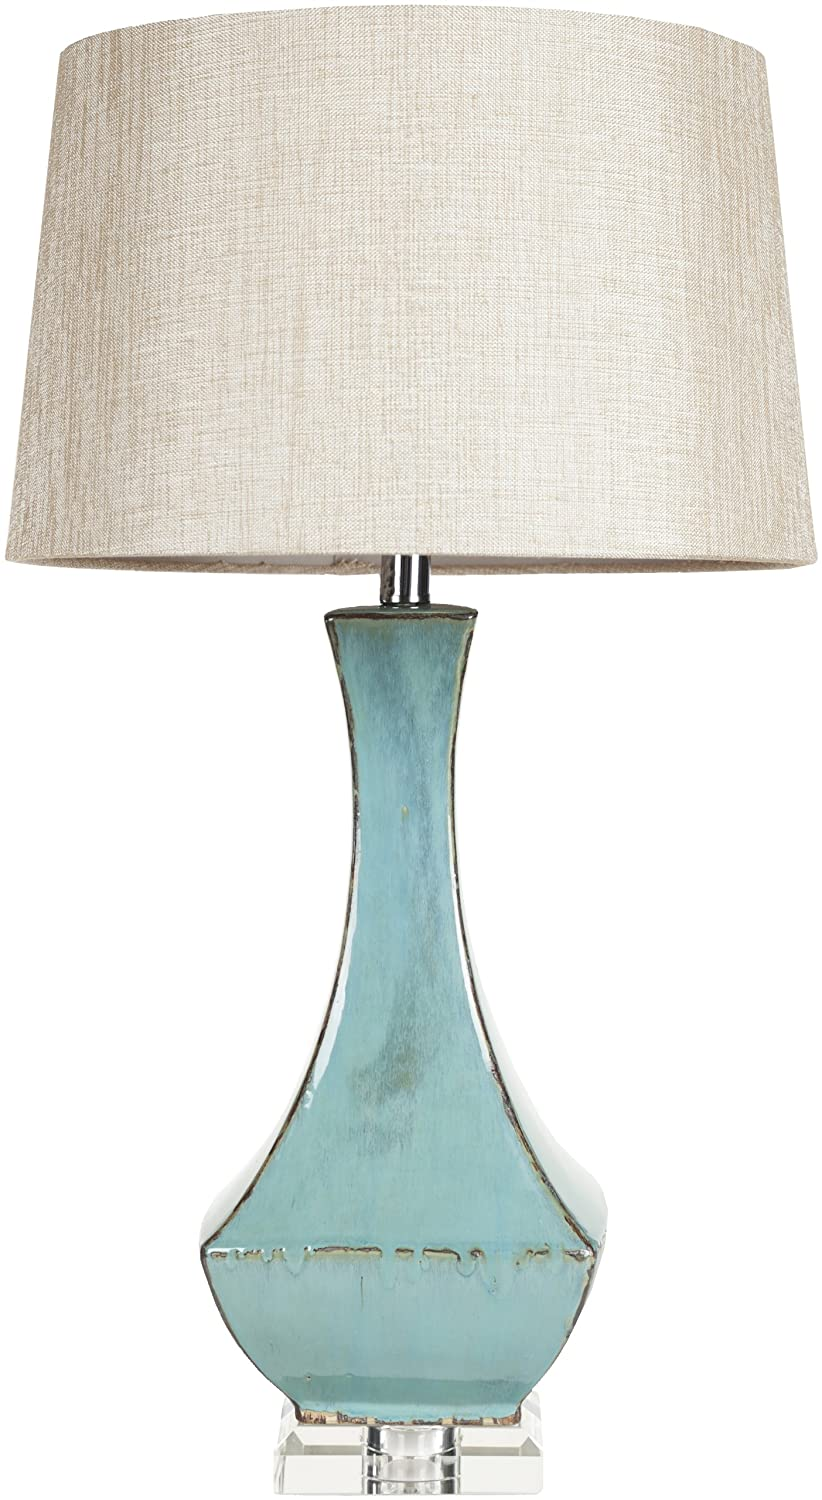 Amazon.com: Surya LMP 1004 Table Lamp, 30 By 16 By 16 Inch, Turquoise  Reactive Glaze: Home U0026 Kitchen